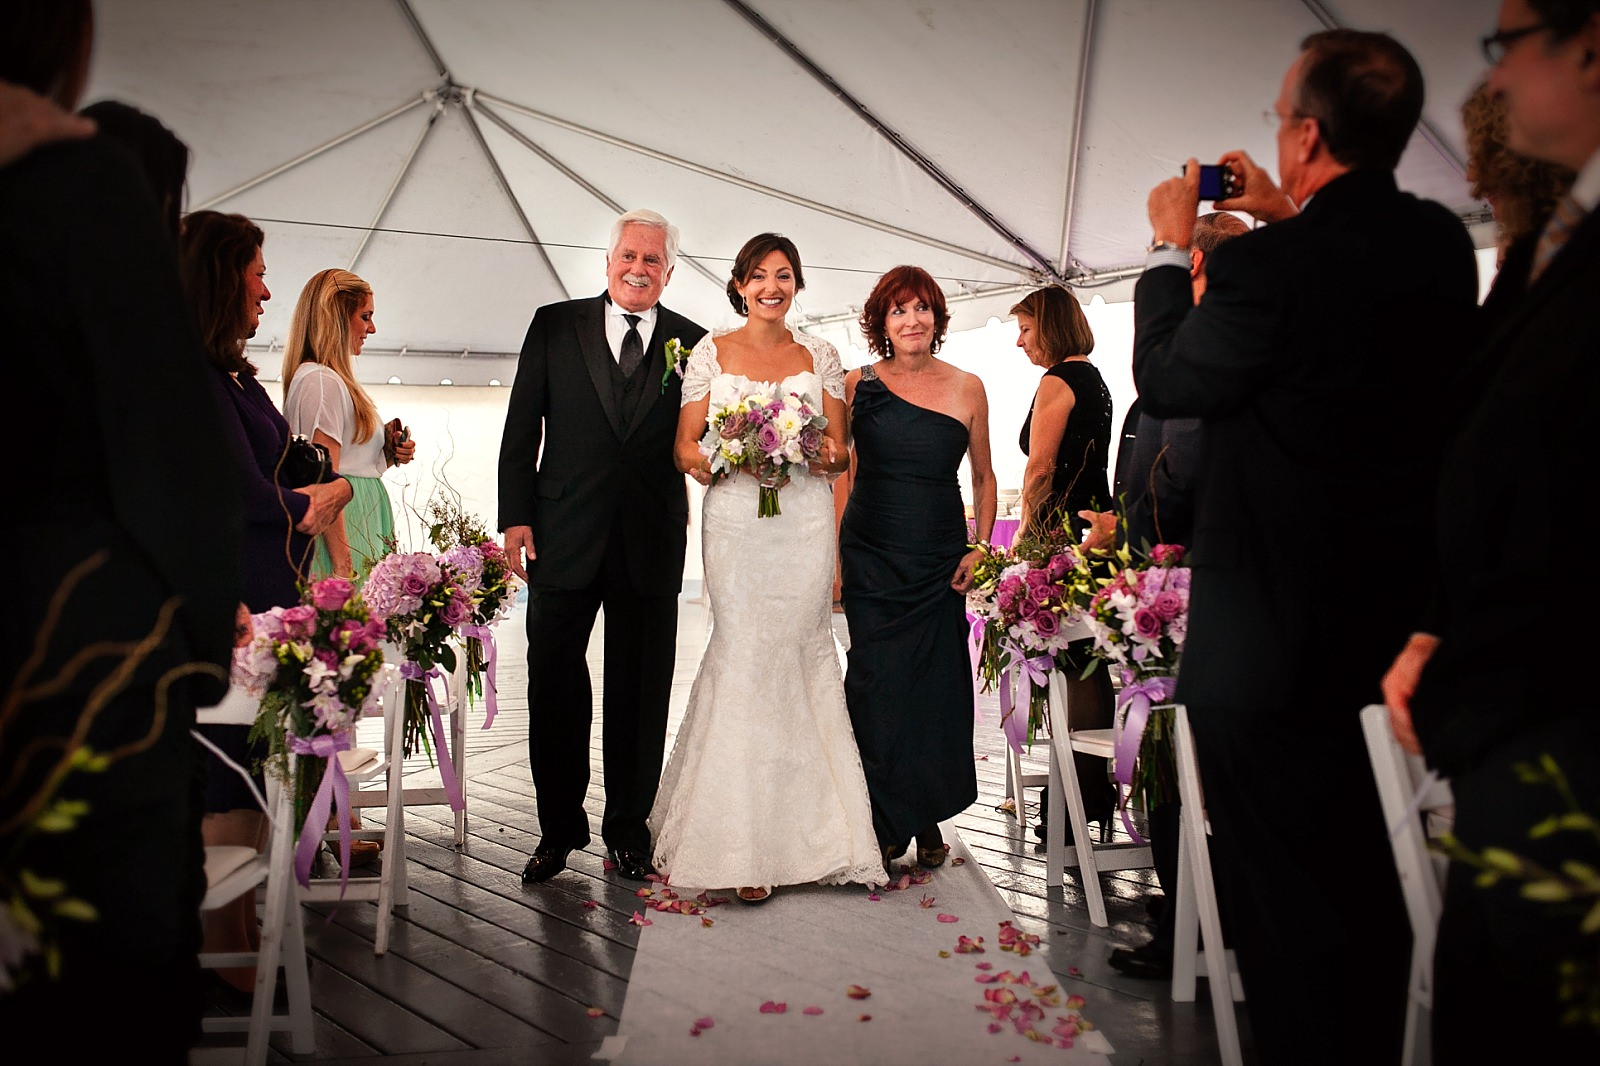 NY_Wedding_Photographer_KaJo_31.jpg